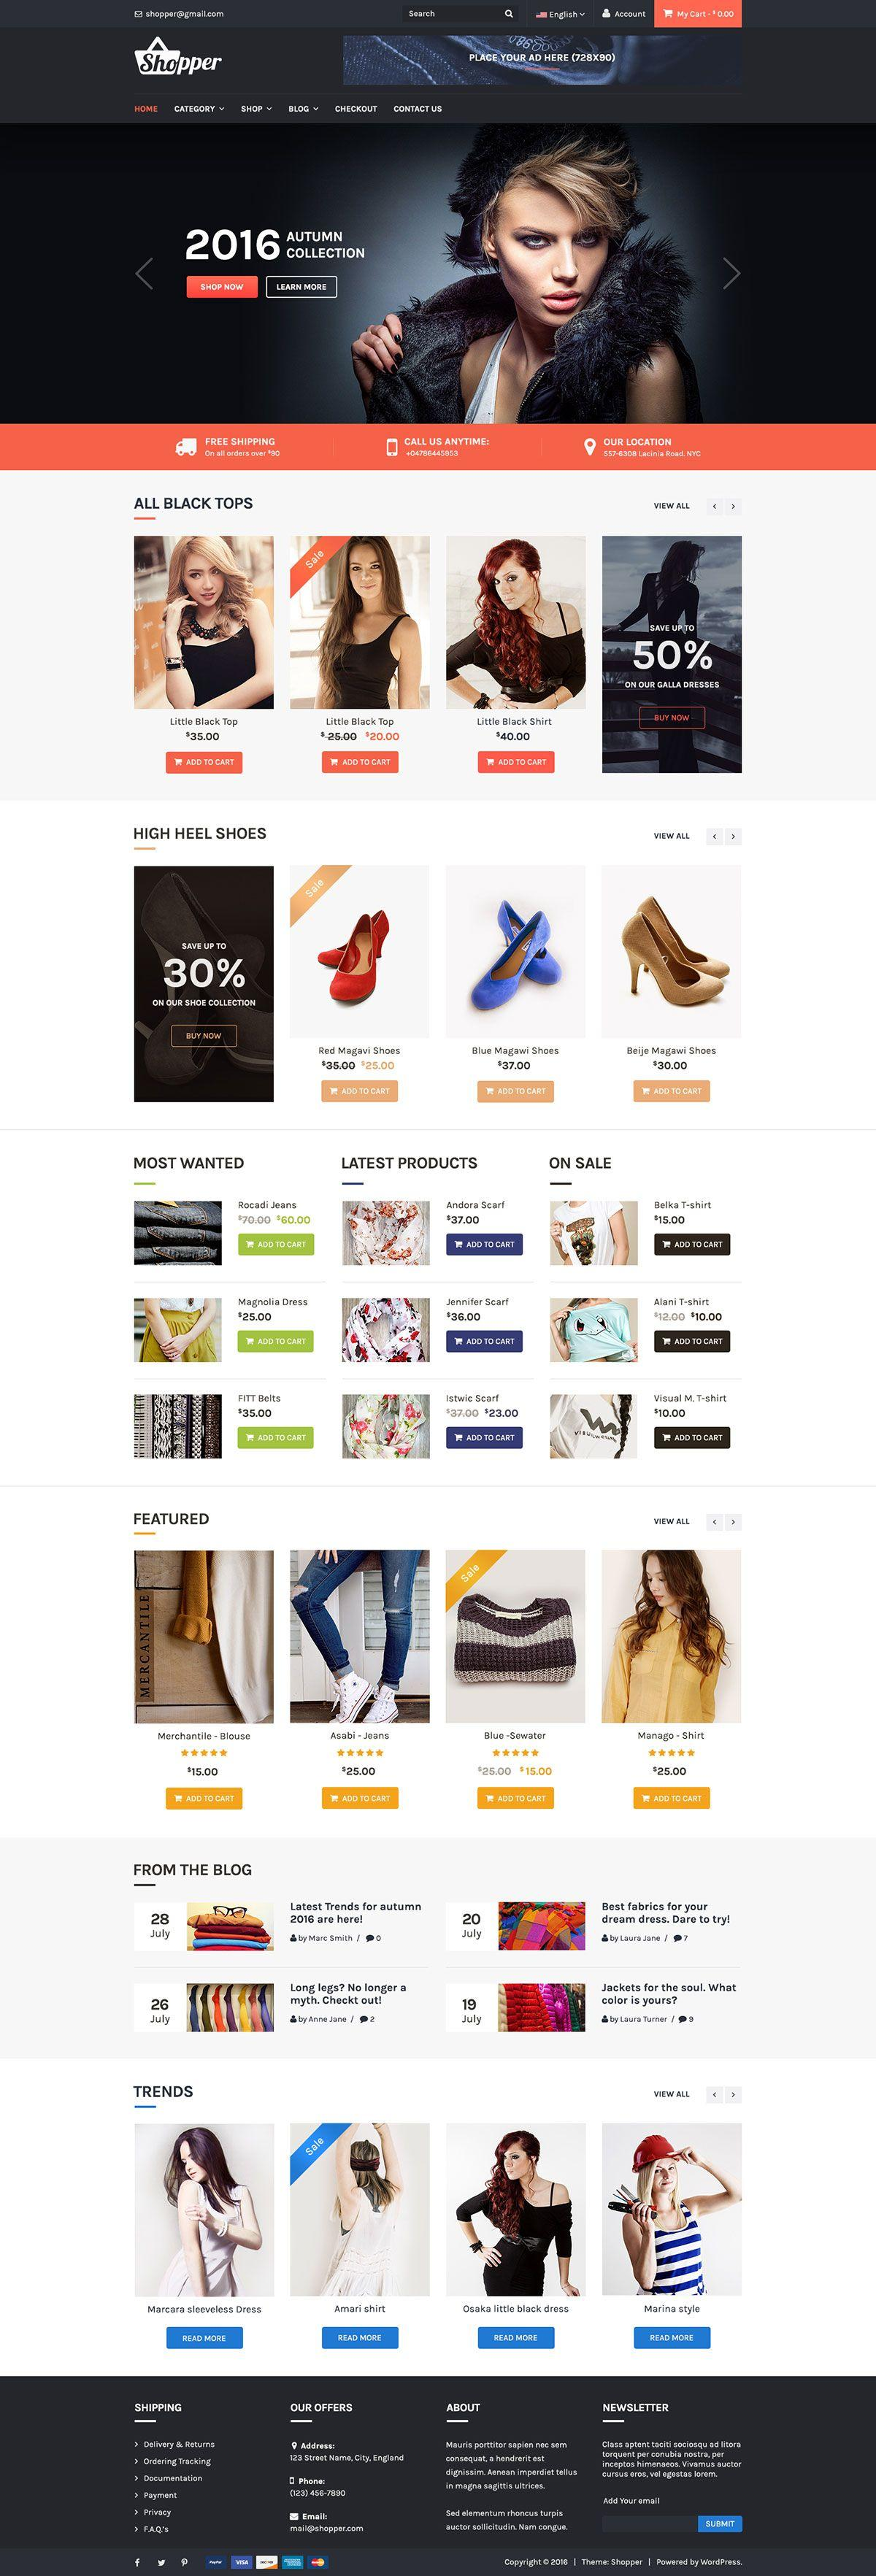 Free Ecommerce Website Template WordPress